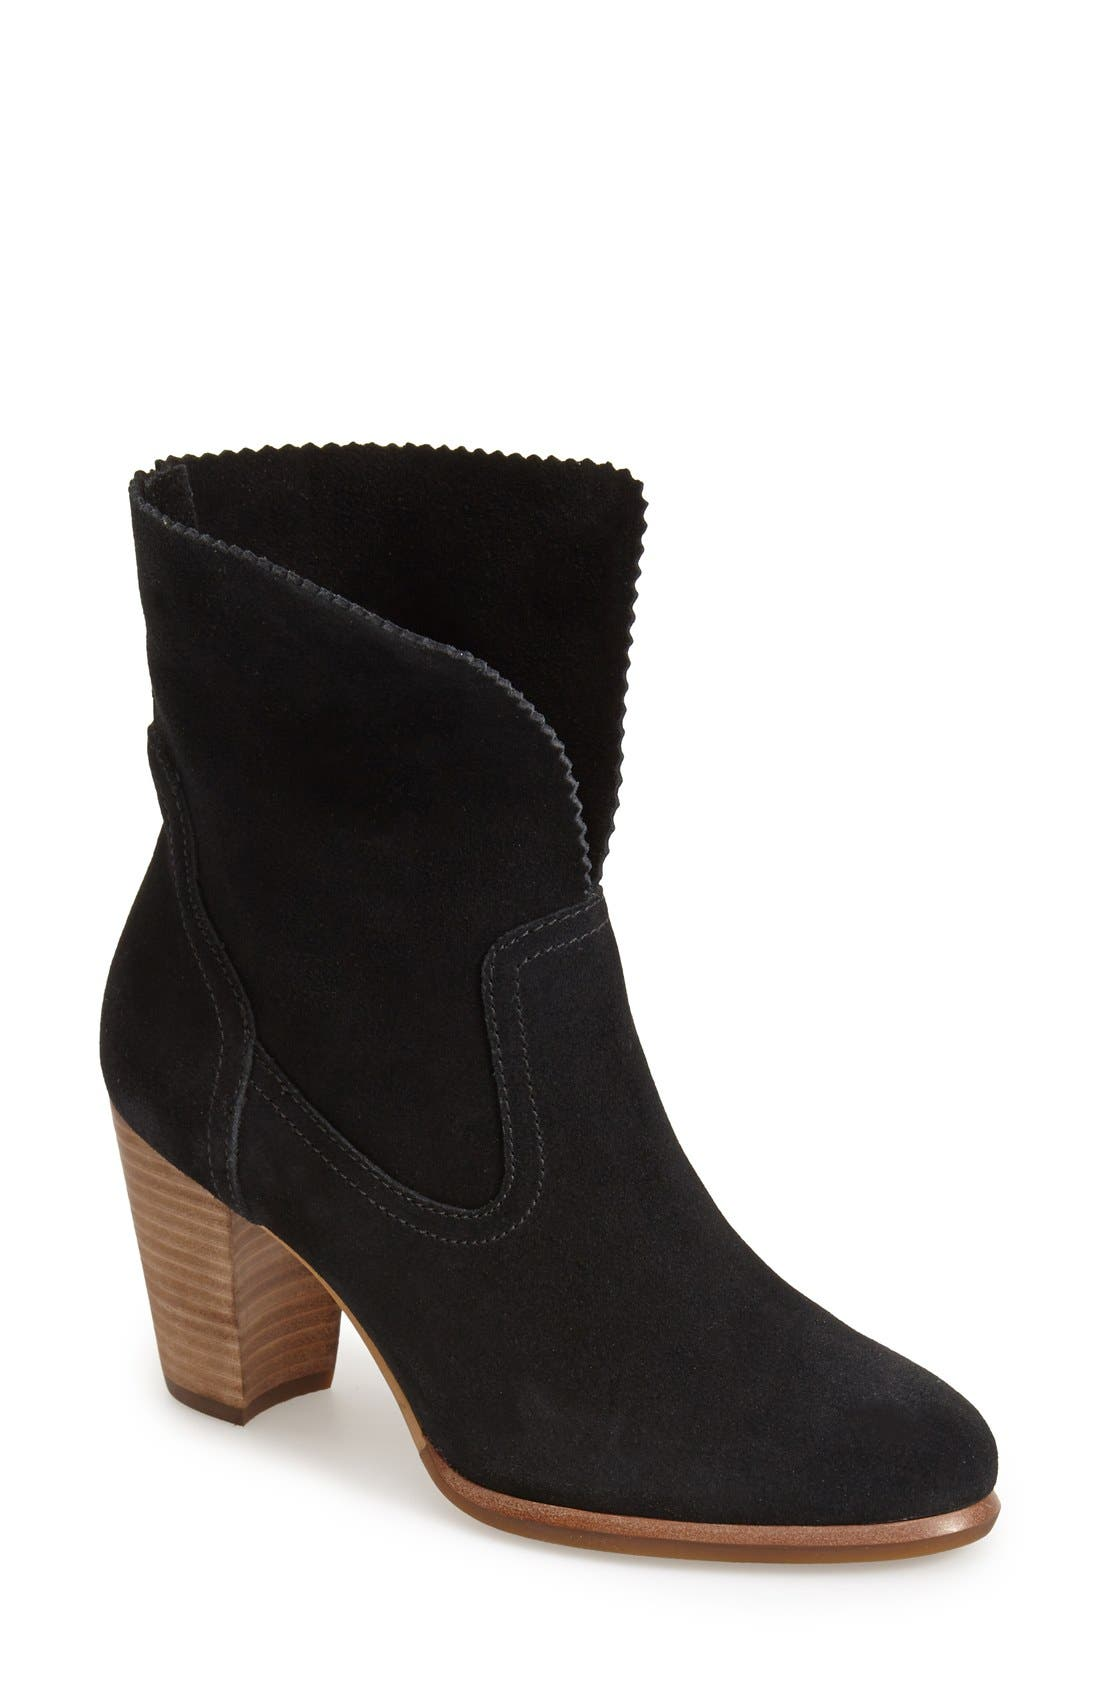 Alternate Image 1 Selected - UGG® Australia 'Thames' Foldover Cuff Boot (Women)